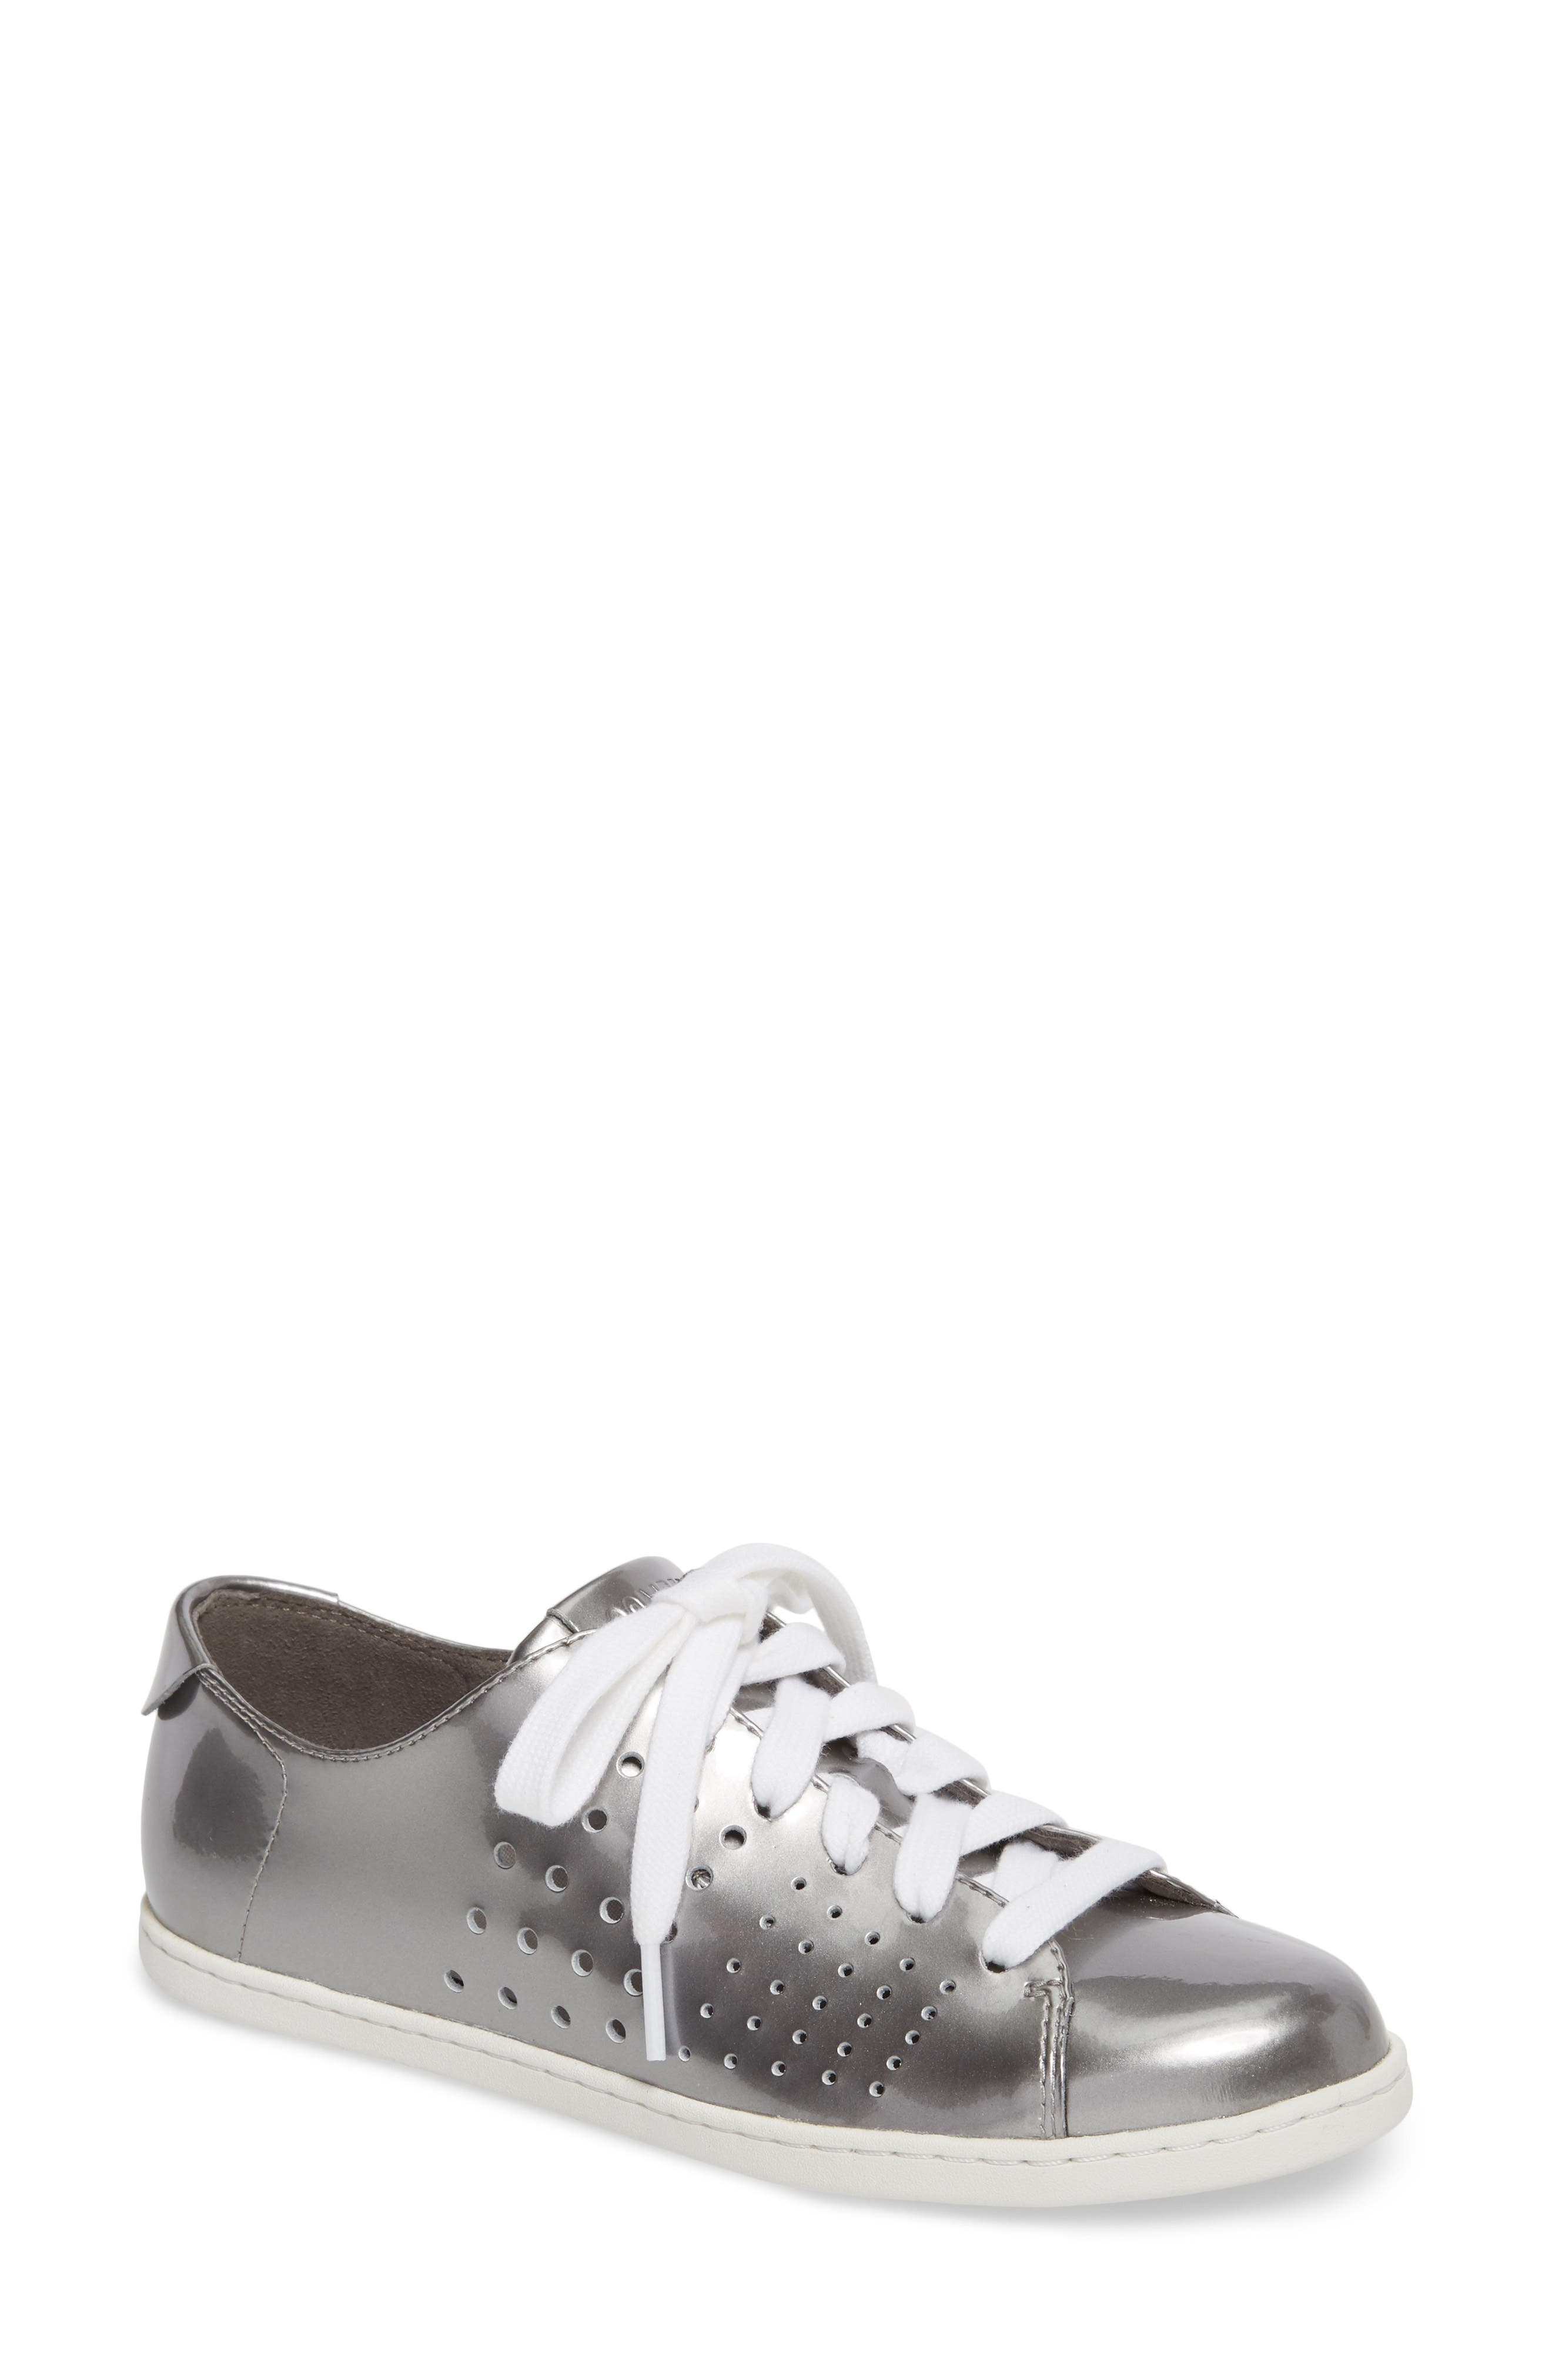 Twins Perforated Low Top Sneaker,                             Main thumbnail 1, color,                             Medium Gray Leather